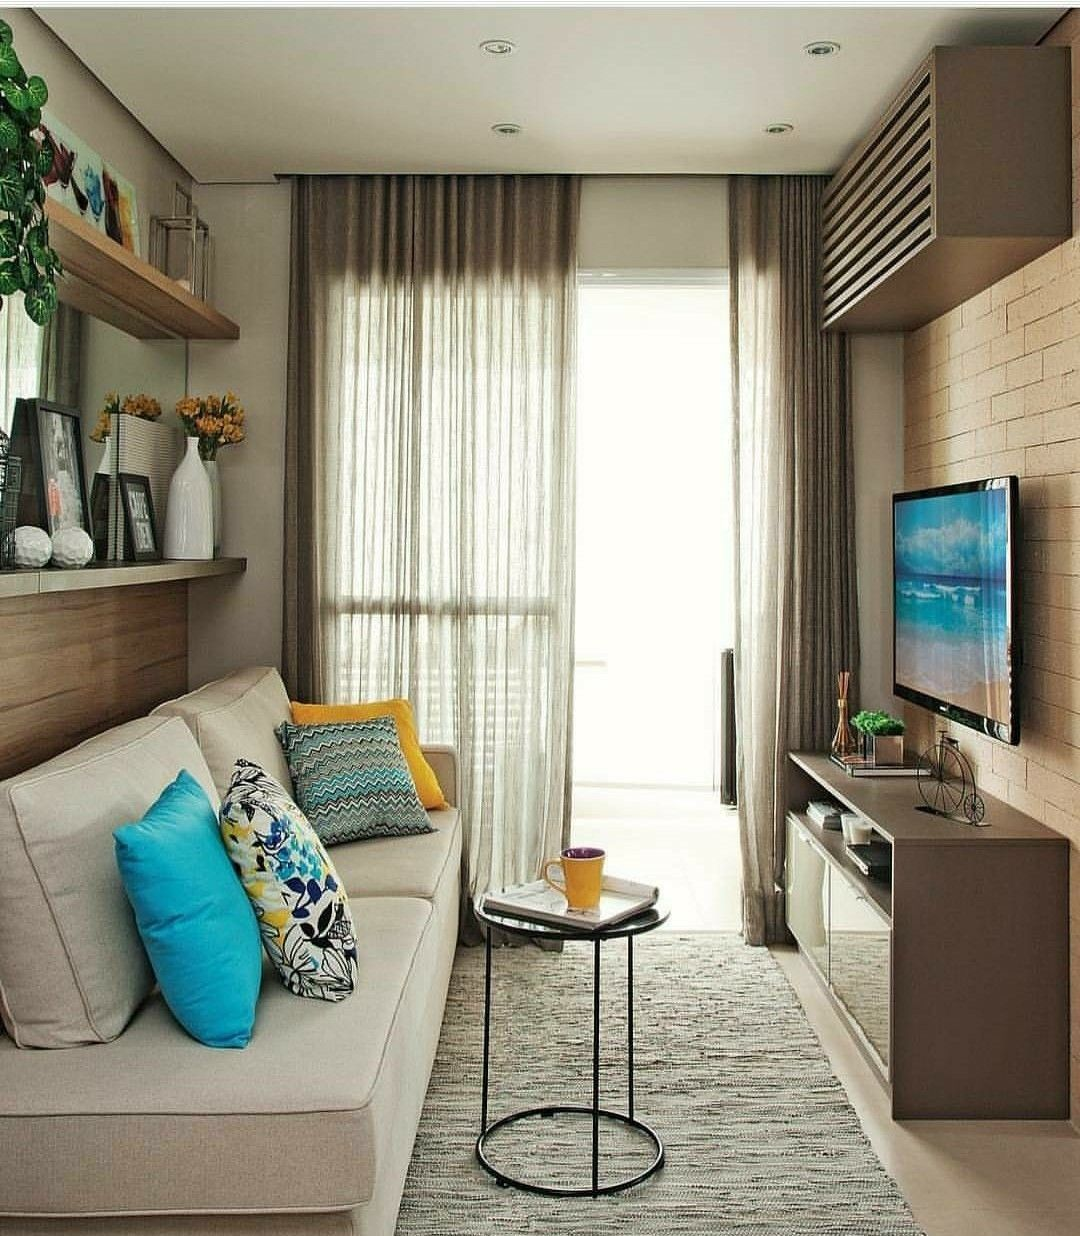 Pin by Mariann Fodor on small apartments   Pinterest   Living ...